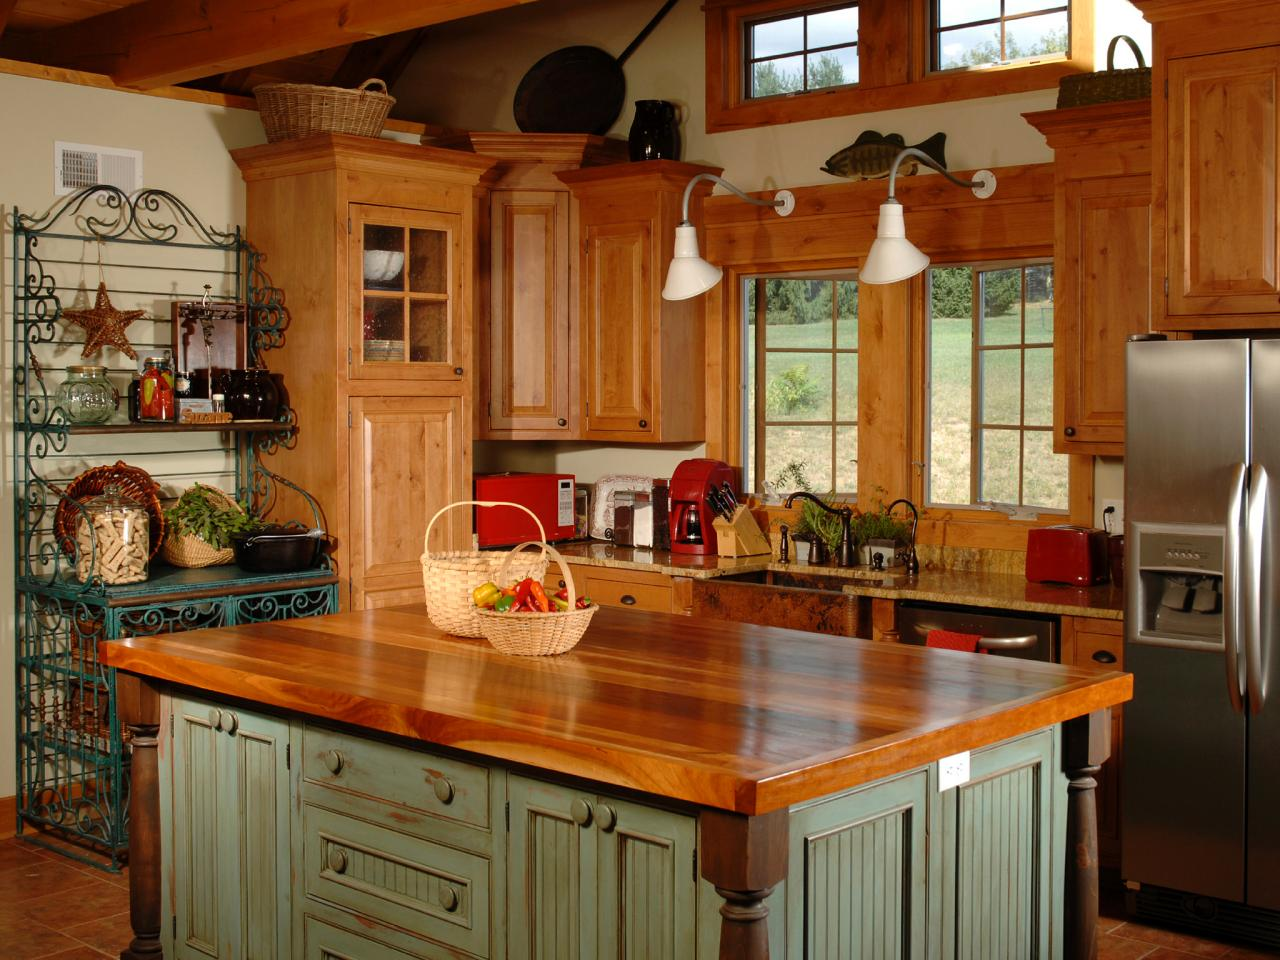 Country Kitchen Remodel Country Style Kitchen Remodel Home Remodel Buddy Ellsworth Kitchen